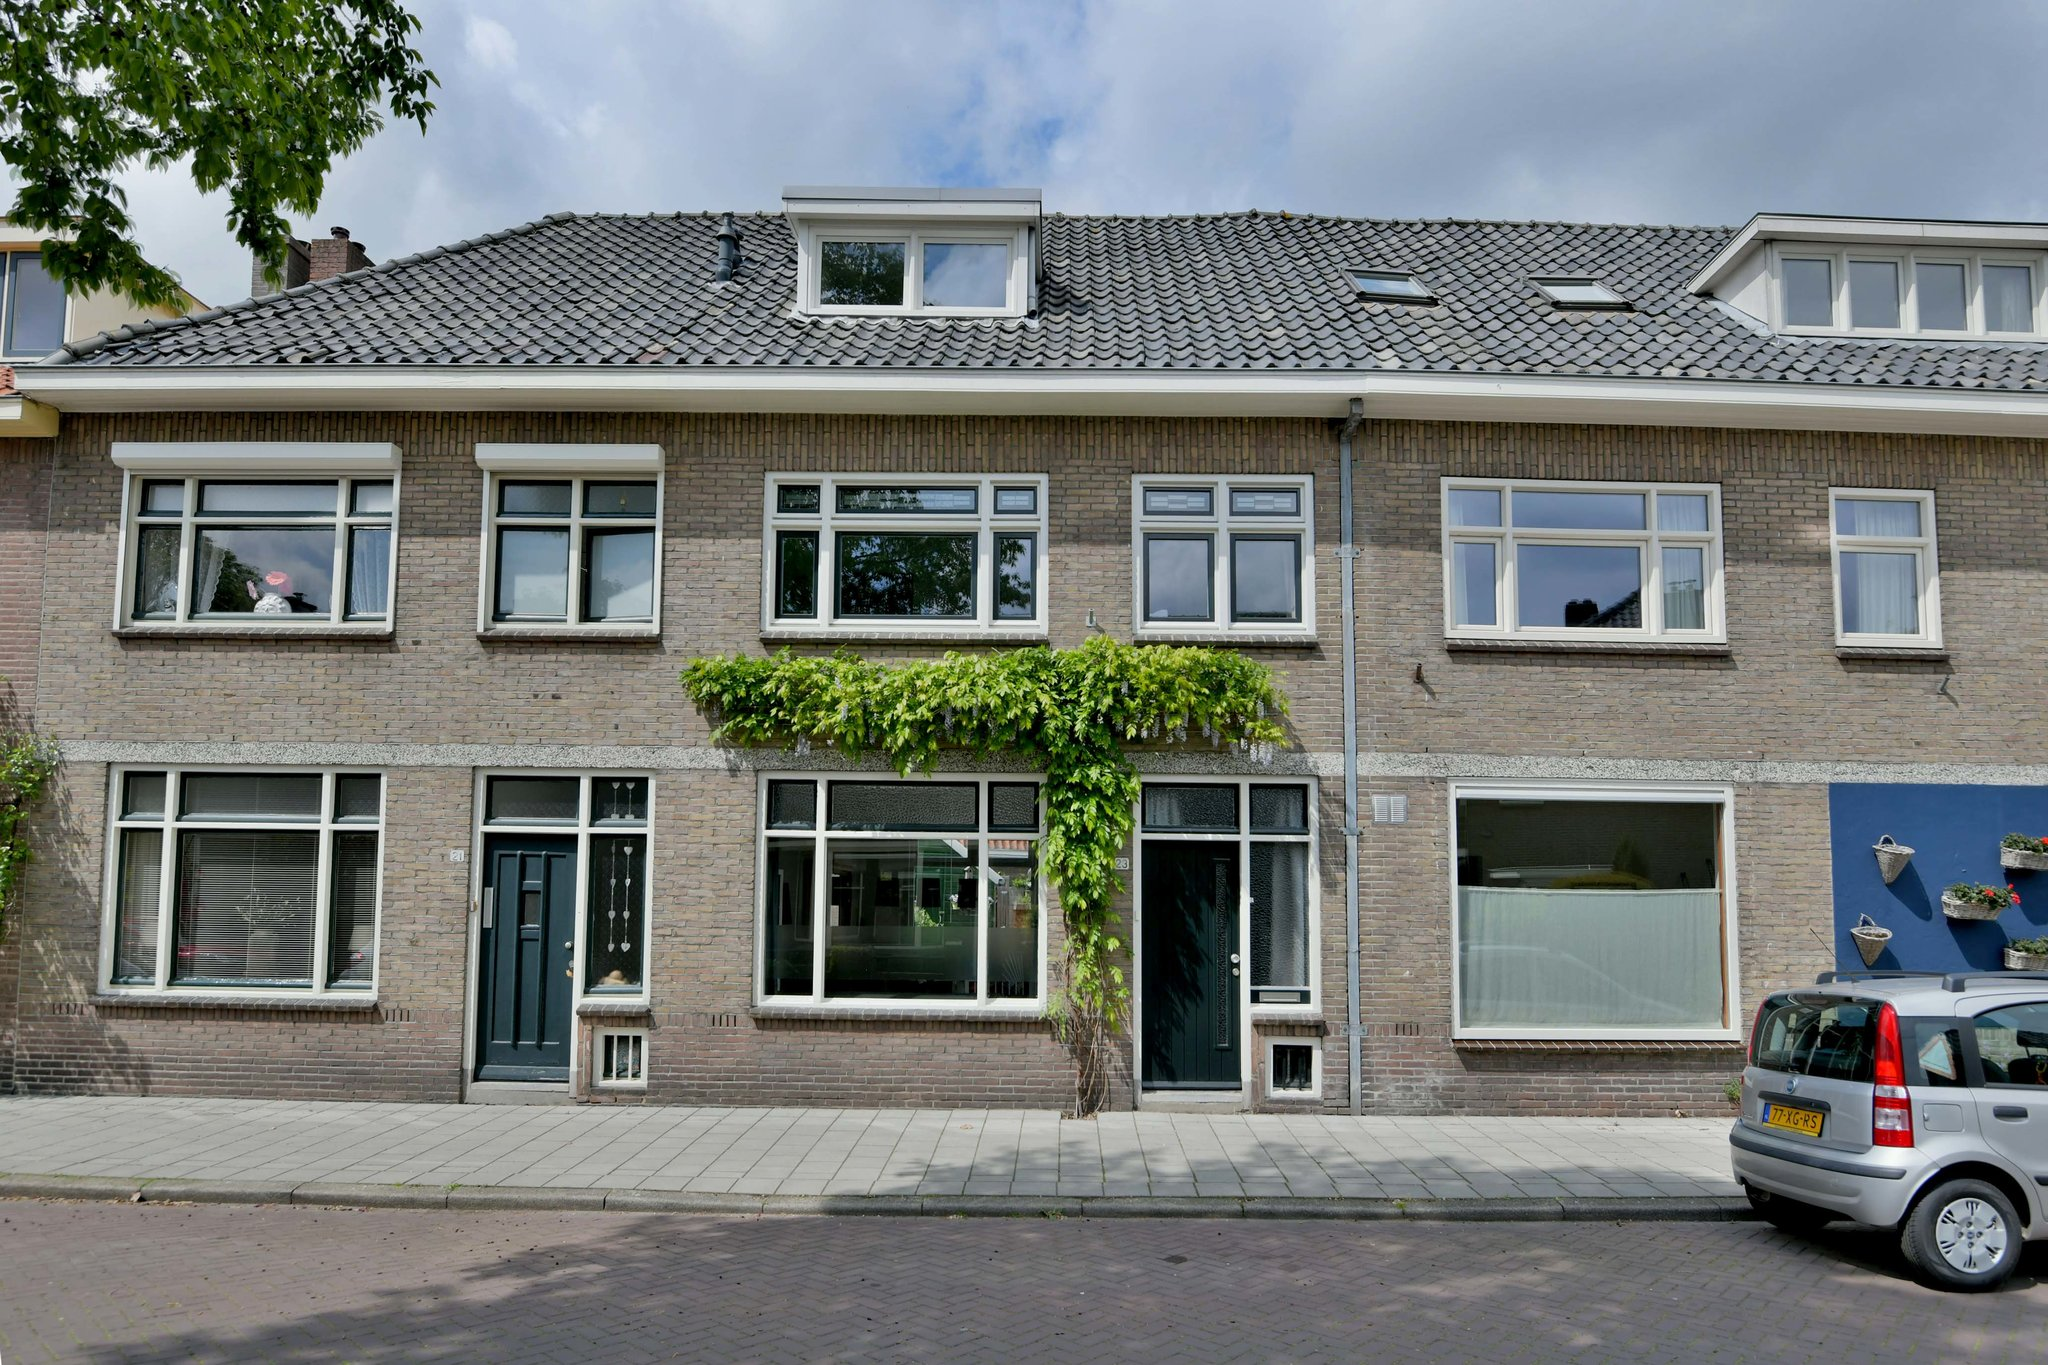 deventer-oudegoedstraat-3922878-foto-39.jpg